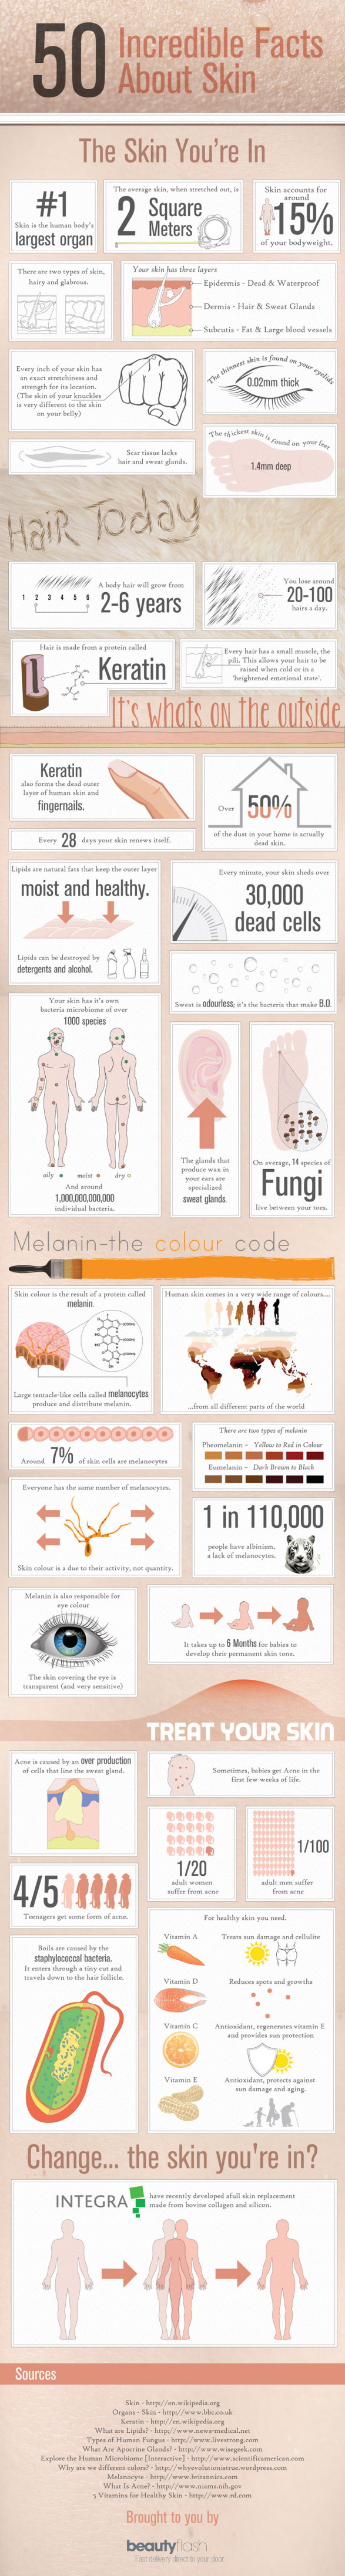 50 Incredible Facts About Skin